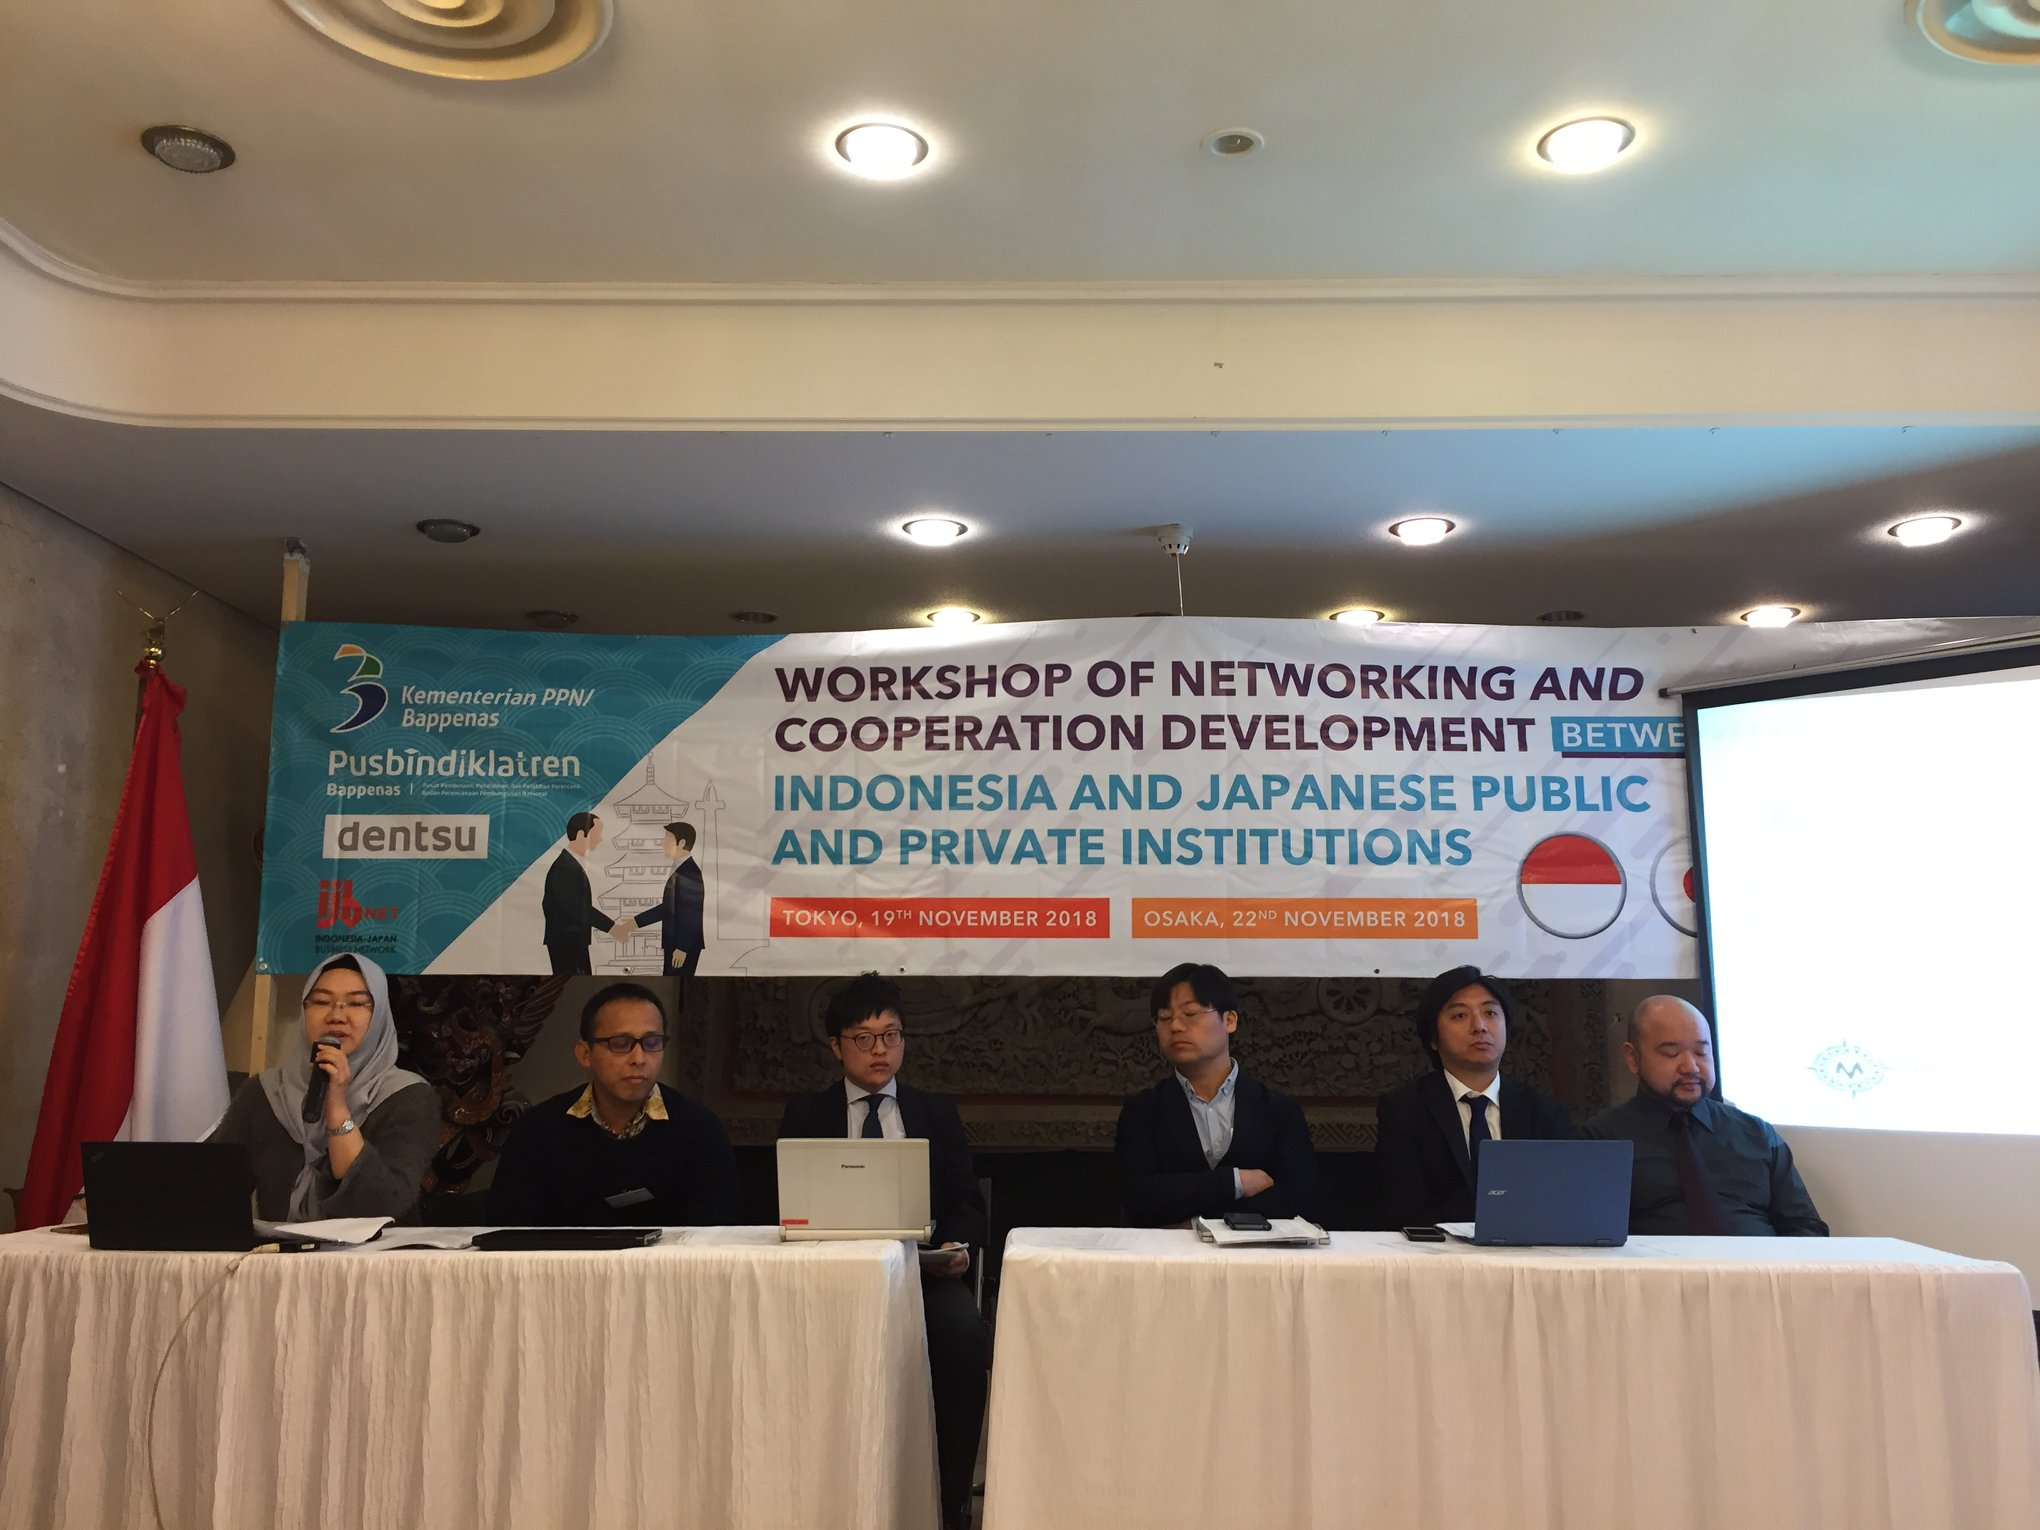 Workshop Networking and Cooperation Development, KJRI Osaka, 22 November 2018